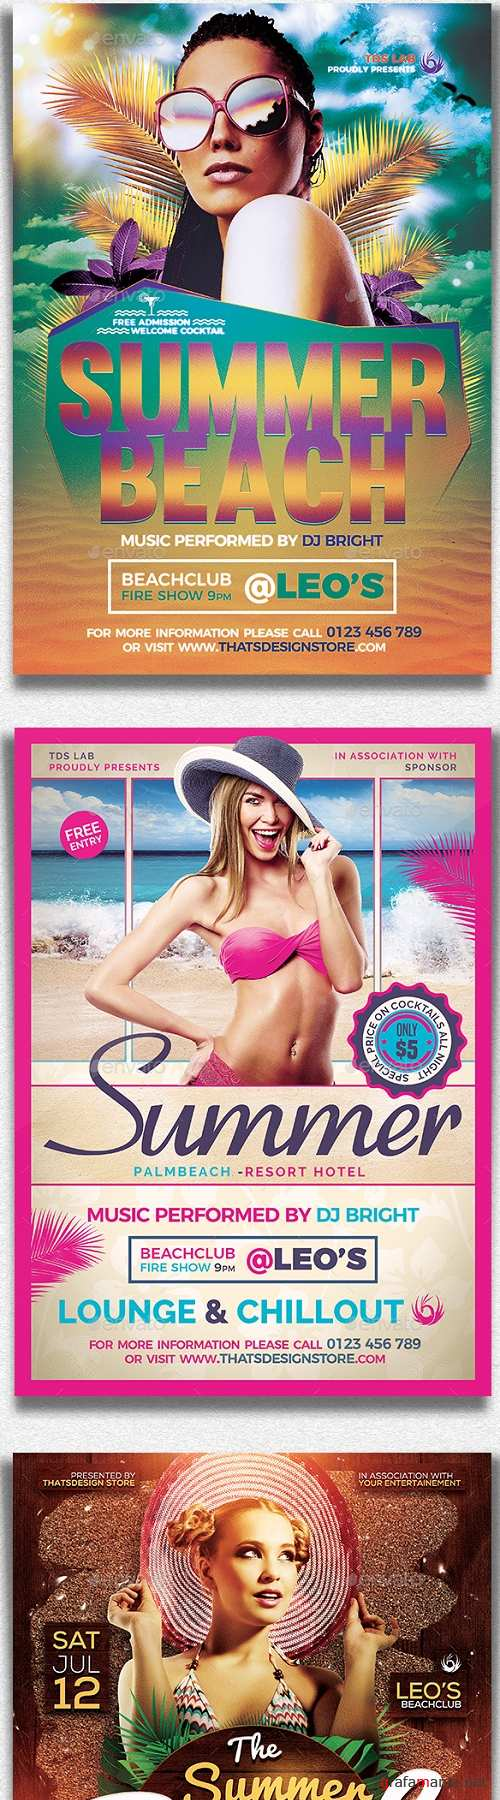 Summer Beach Flyer Bundle - 19888525 - 1474128